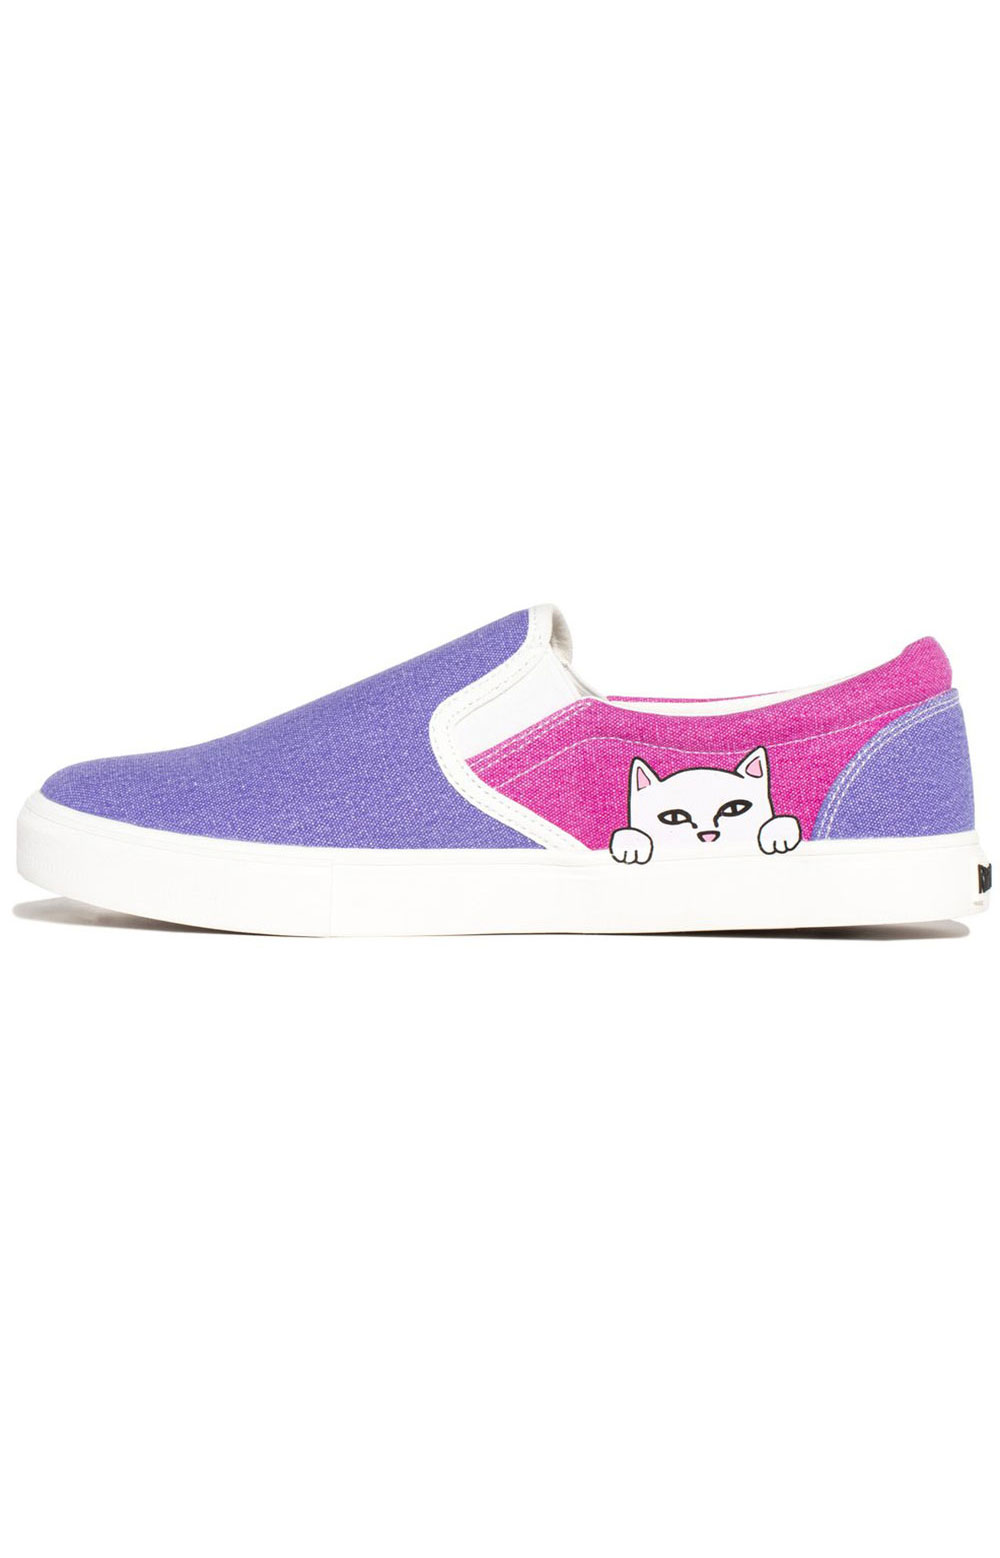 Lord Nermal UV Activated Slip-On Shoes - Blue/Fuschia 2